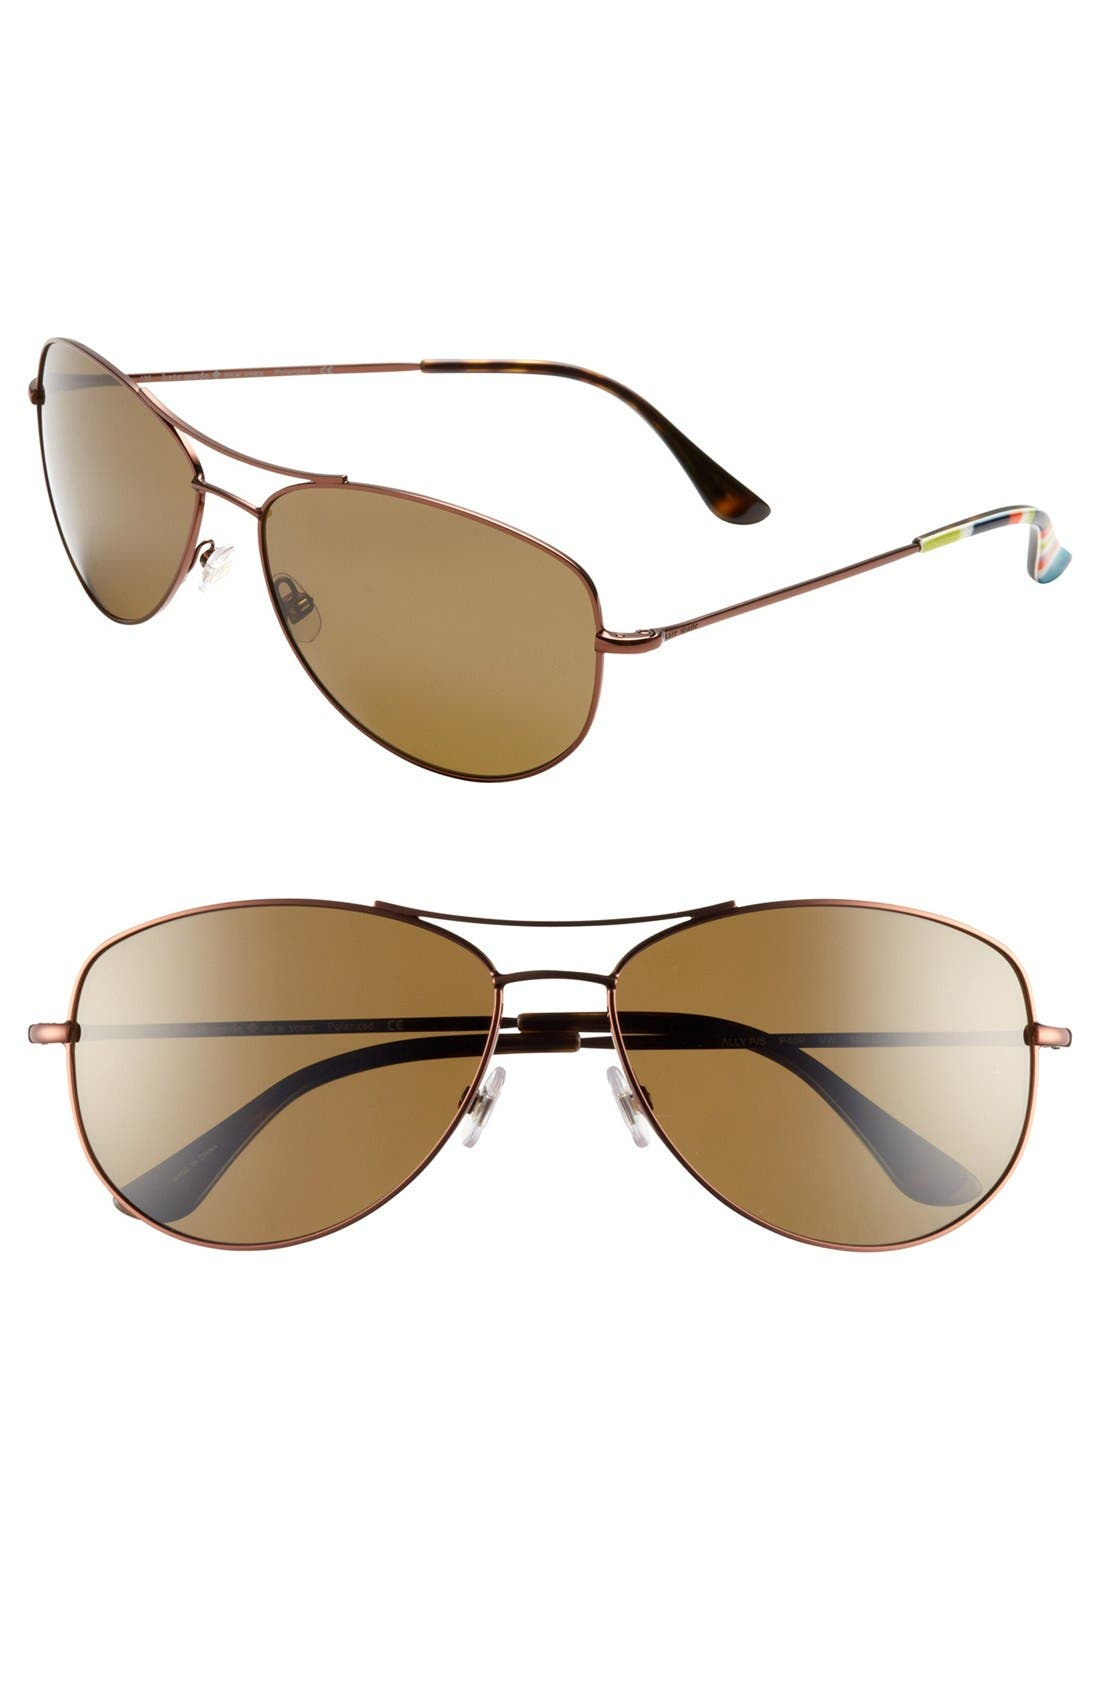 Main Image - kate spade new york 'ally' 60mm polarized metal aviator sunglasses